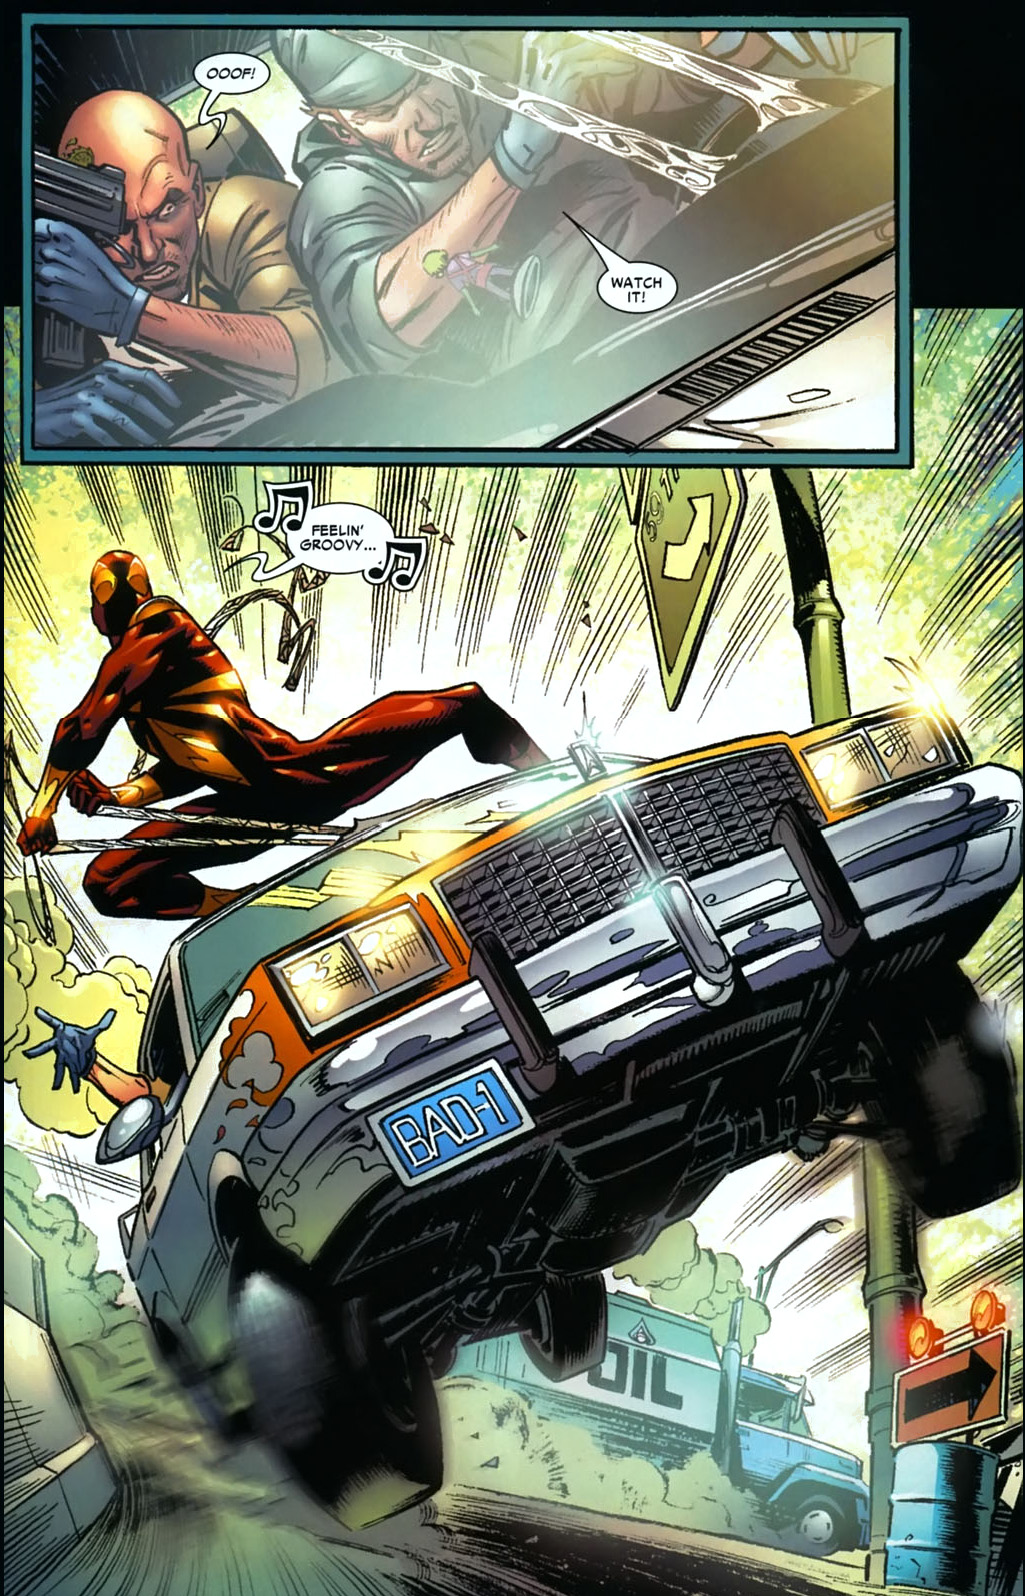 Iron Spidey Stops A Car Chase Comicnewbies